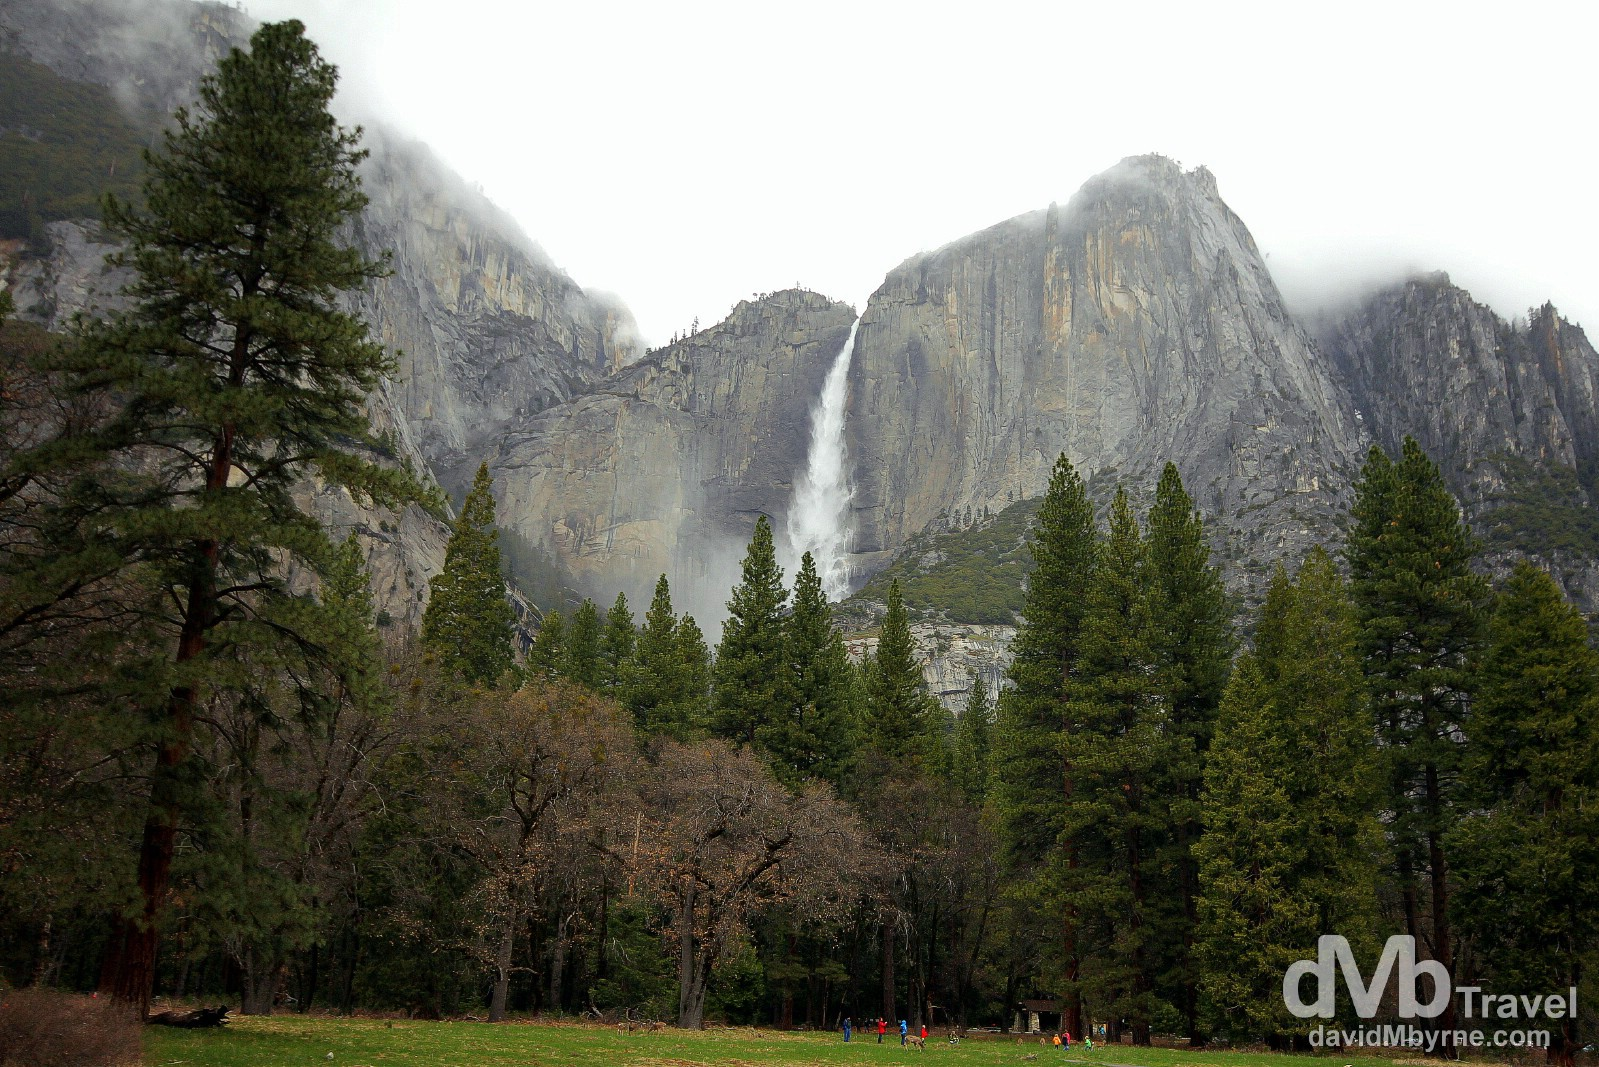 Upper Yosemite Falls as seen from the Yosemite Valley floor, Yosemite National Park, California, USA. April 1st 2013.